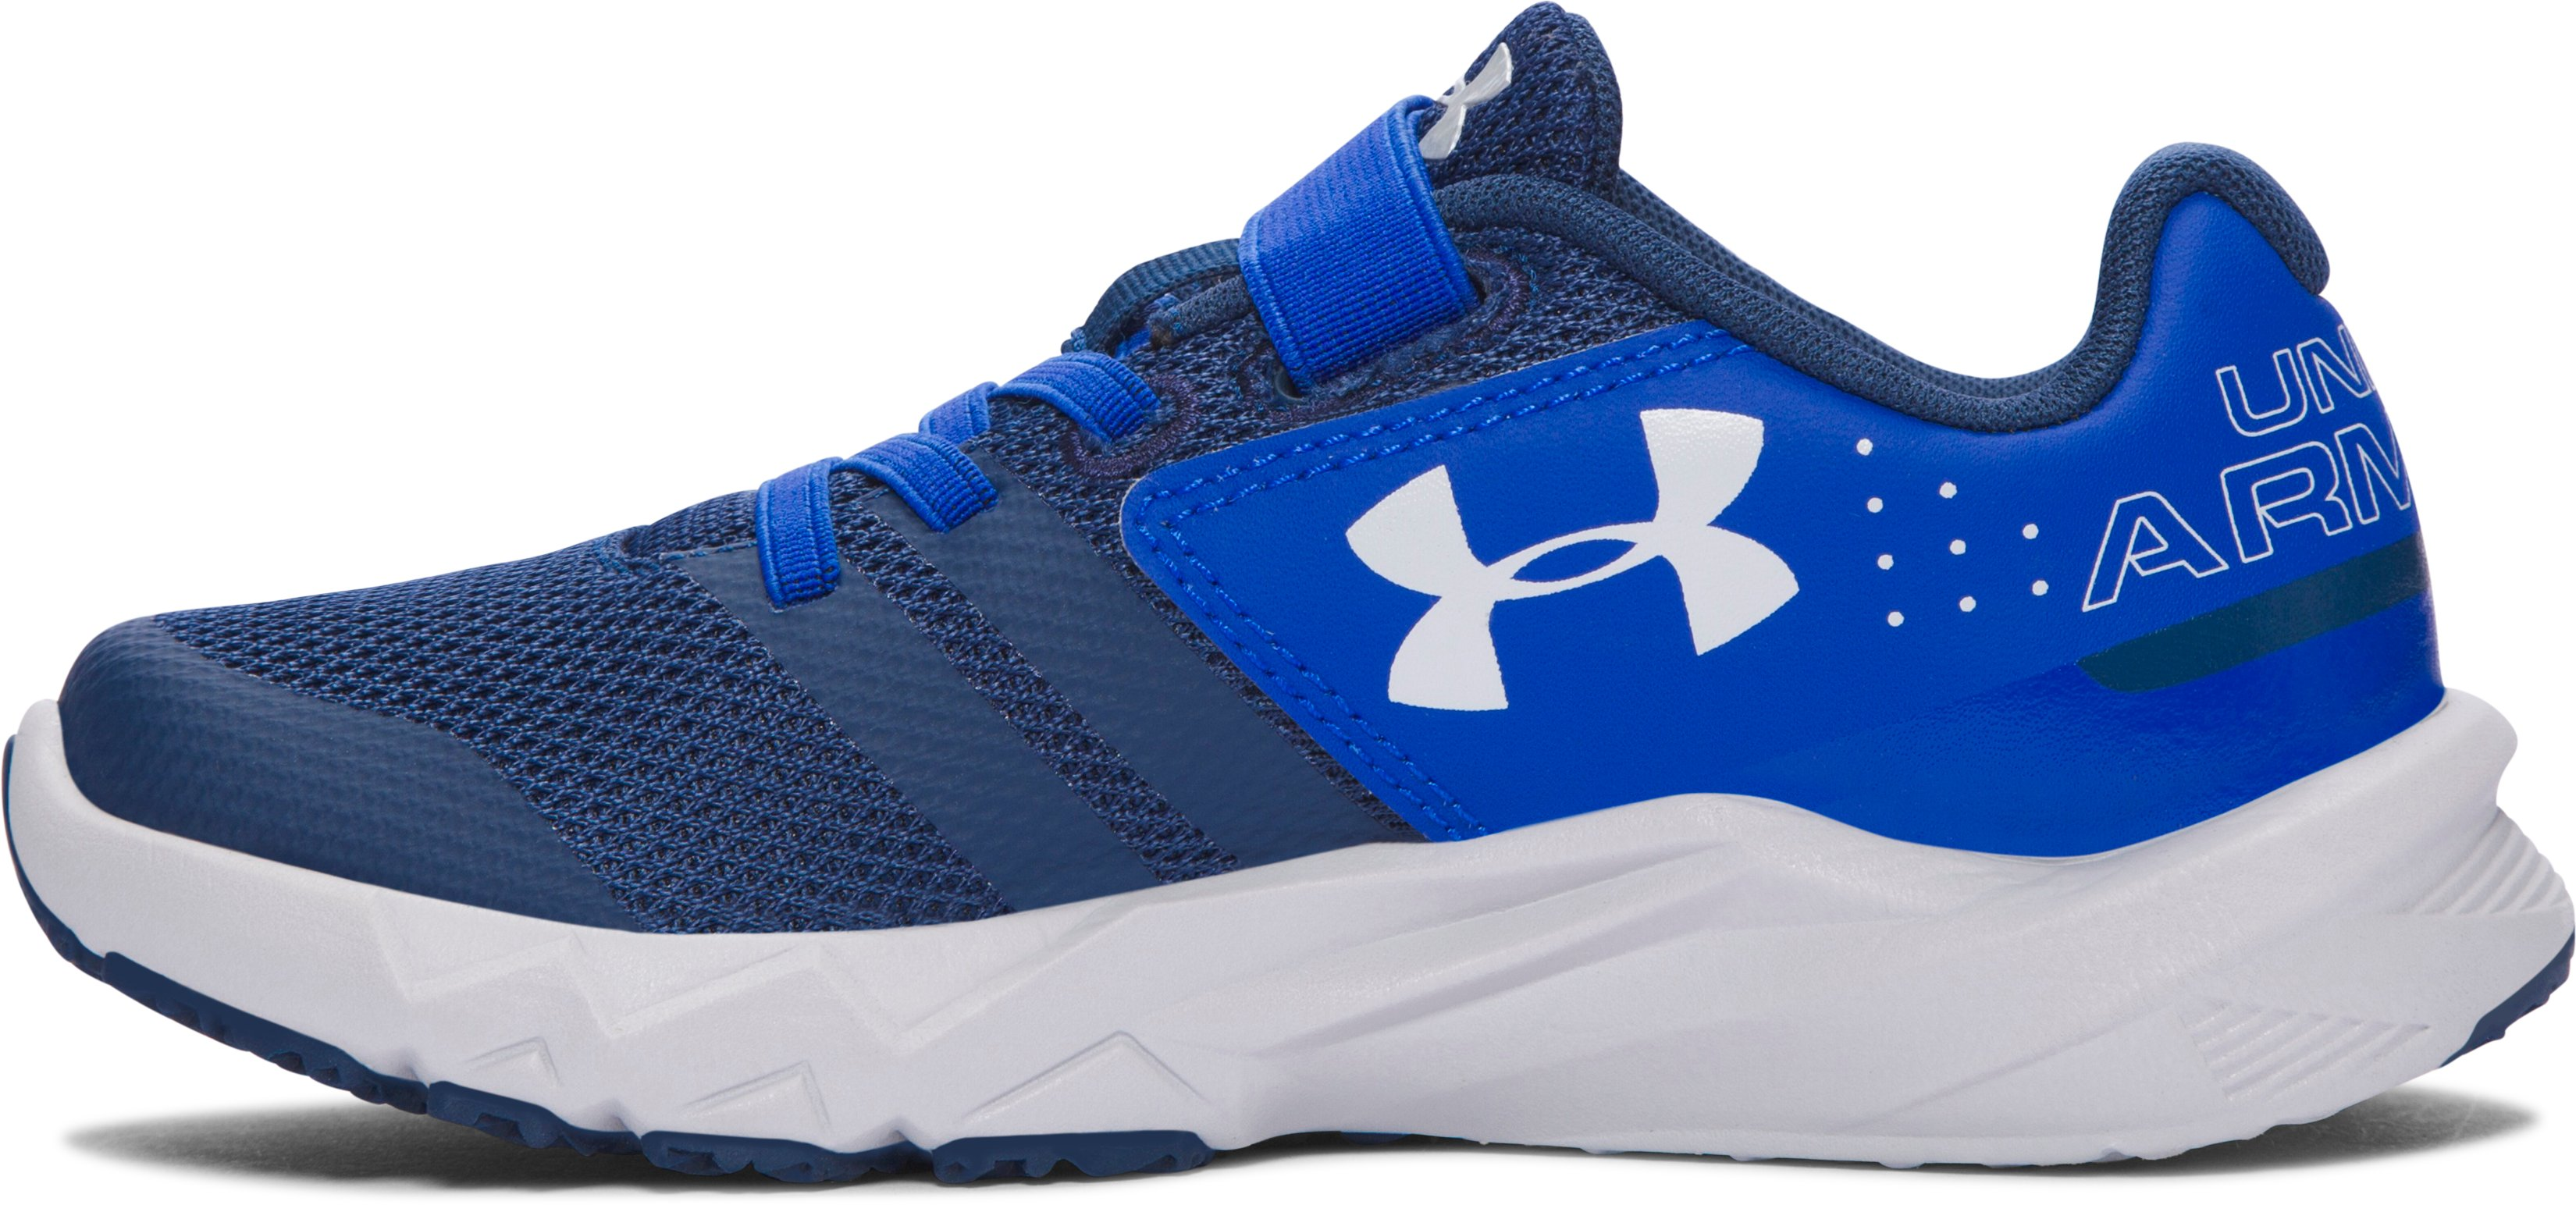 Boys' Pre-School UA Primed AC Running Shoes, BLACKOUT NAVY, undefined